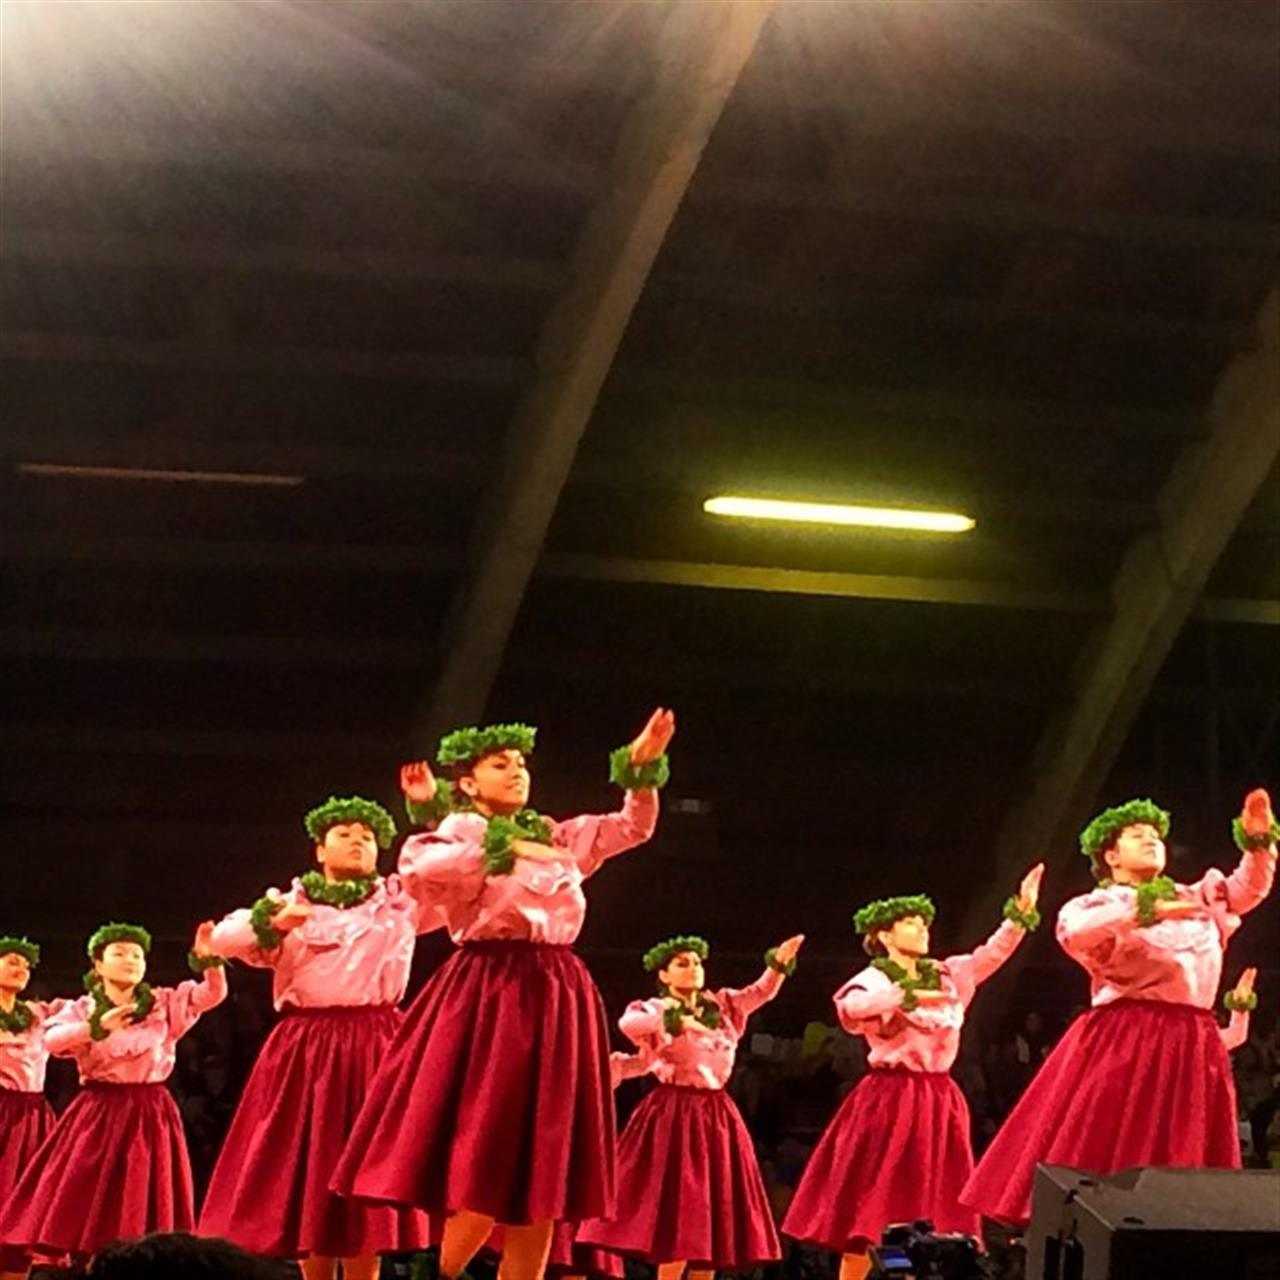 Kahiko night! #MM2015 #MerrieMonarch #hawaiilife #hula #leadingRElocal